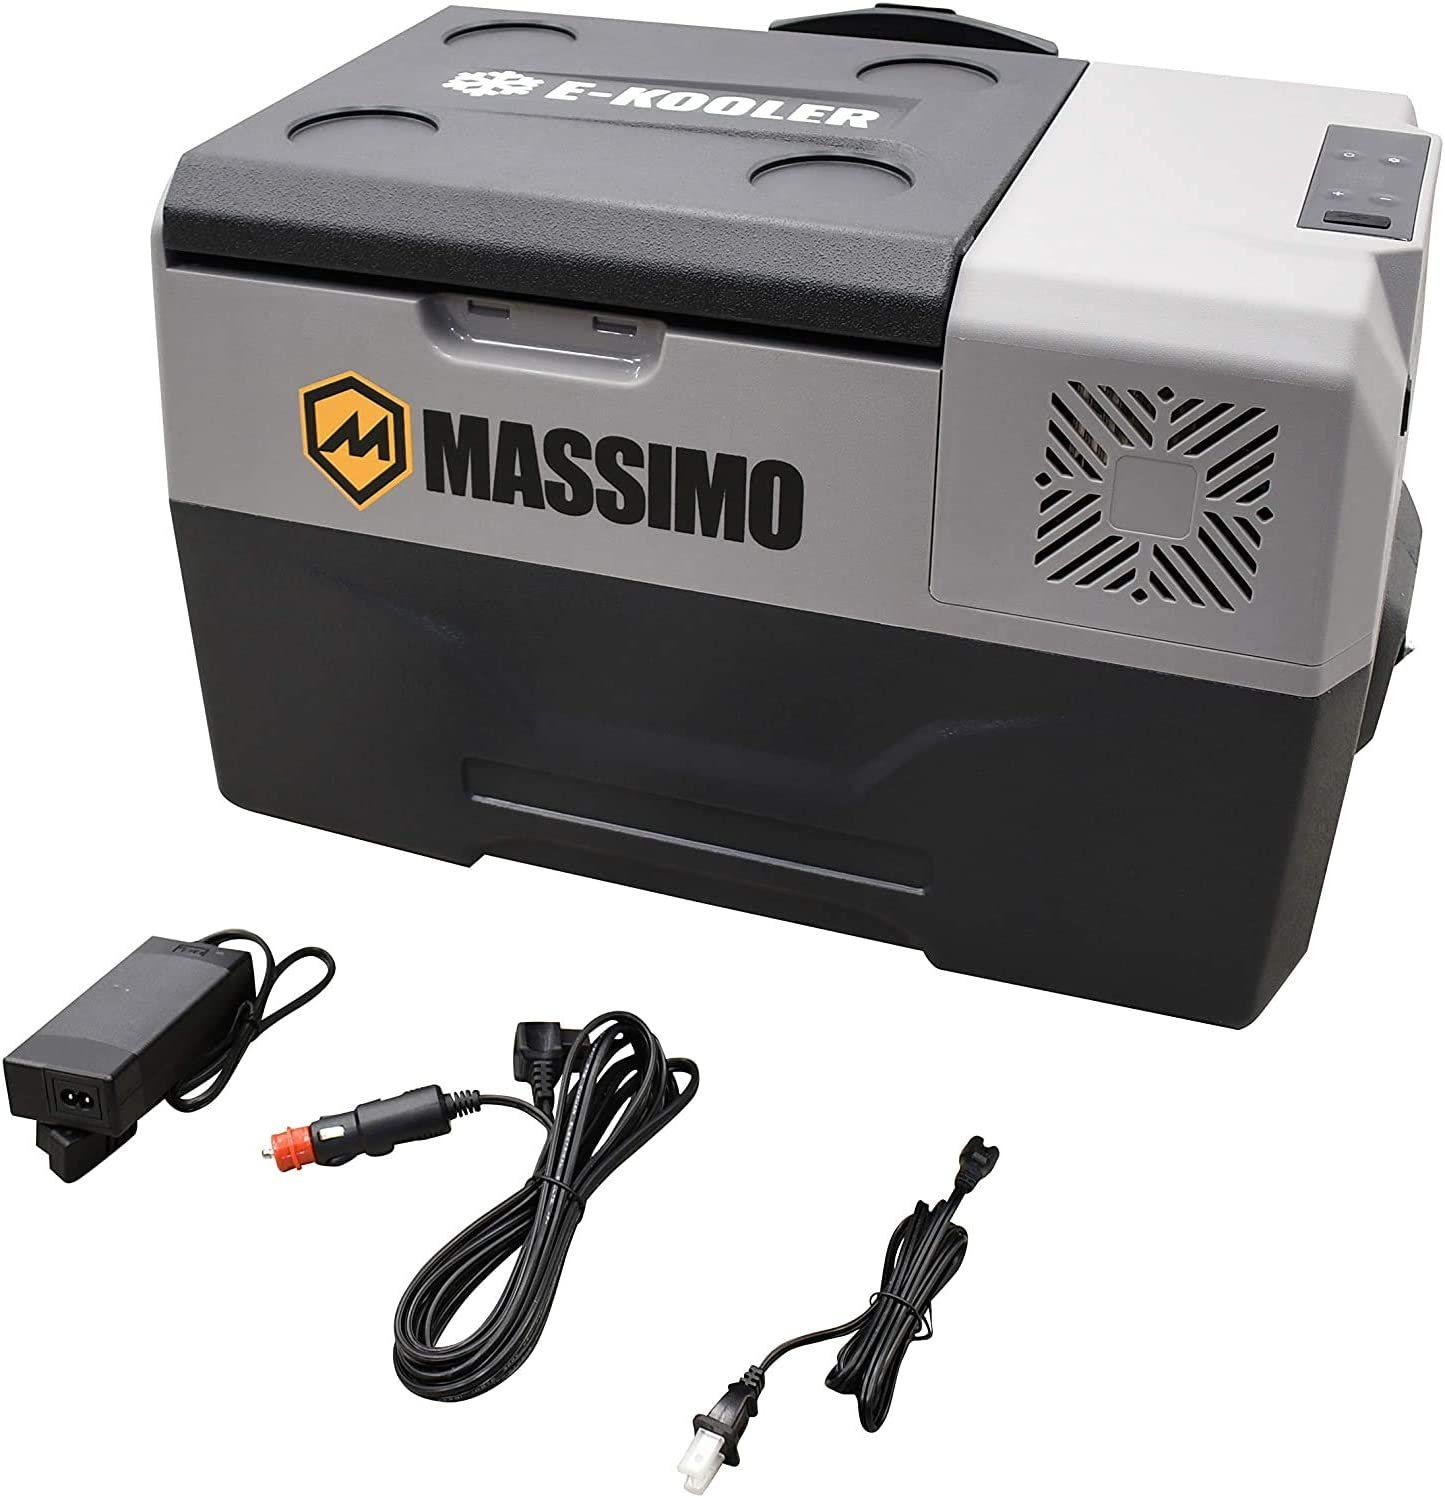 M MASSIMO MOTOR 30L Electric Cooler with Trolley Wheels & Telescopic Handle | 12V DC AC Portable Refrigerator | Travel Freezer for Picnic, Camping, Boat & Car, 30L-Medium